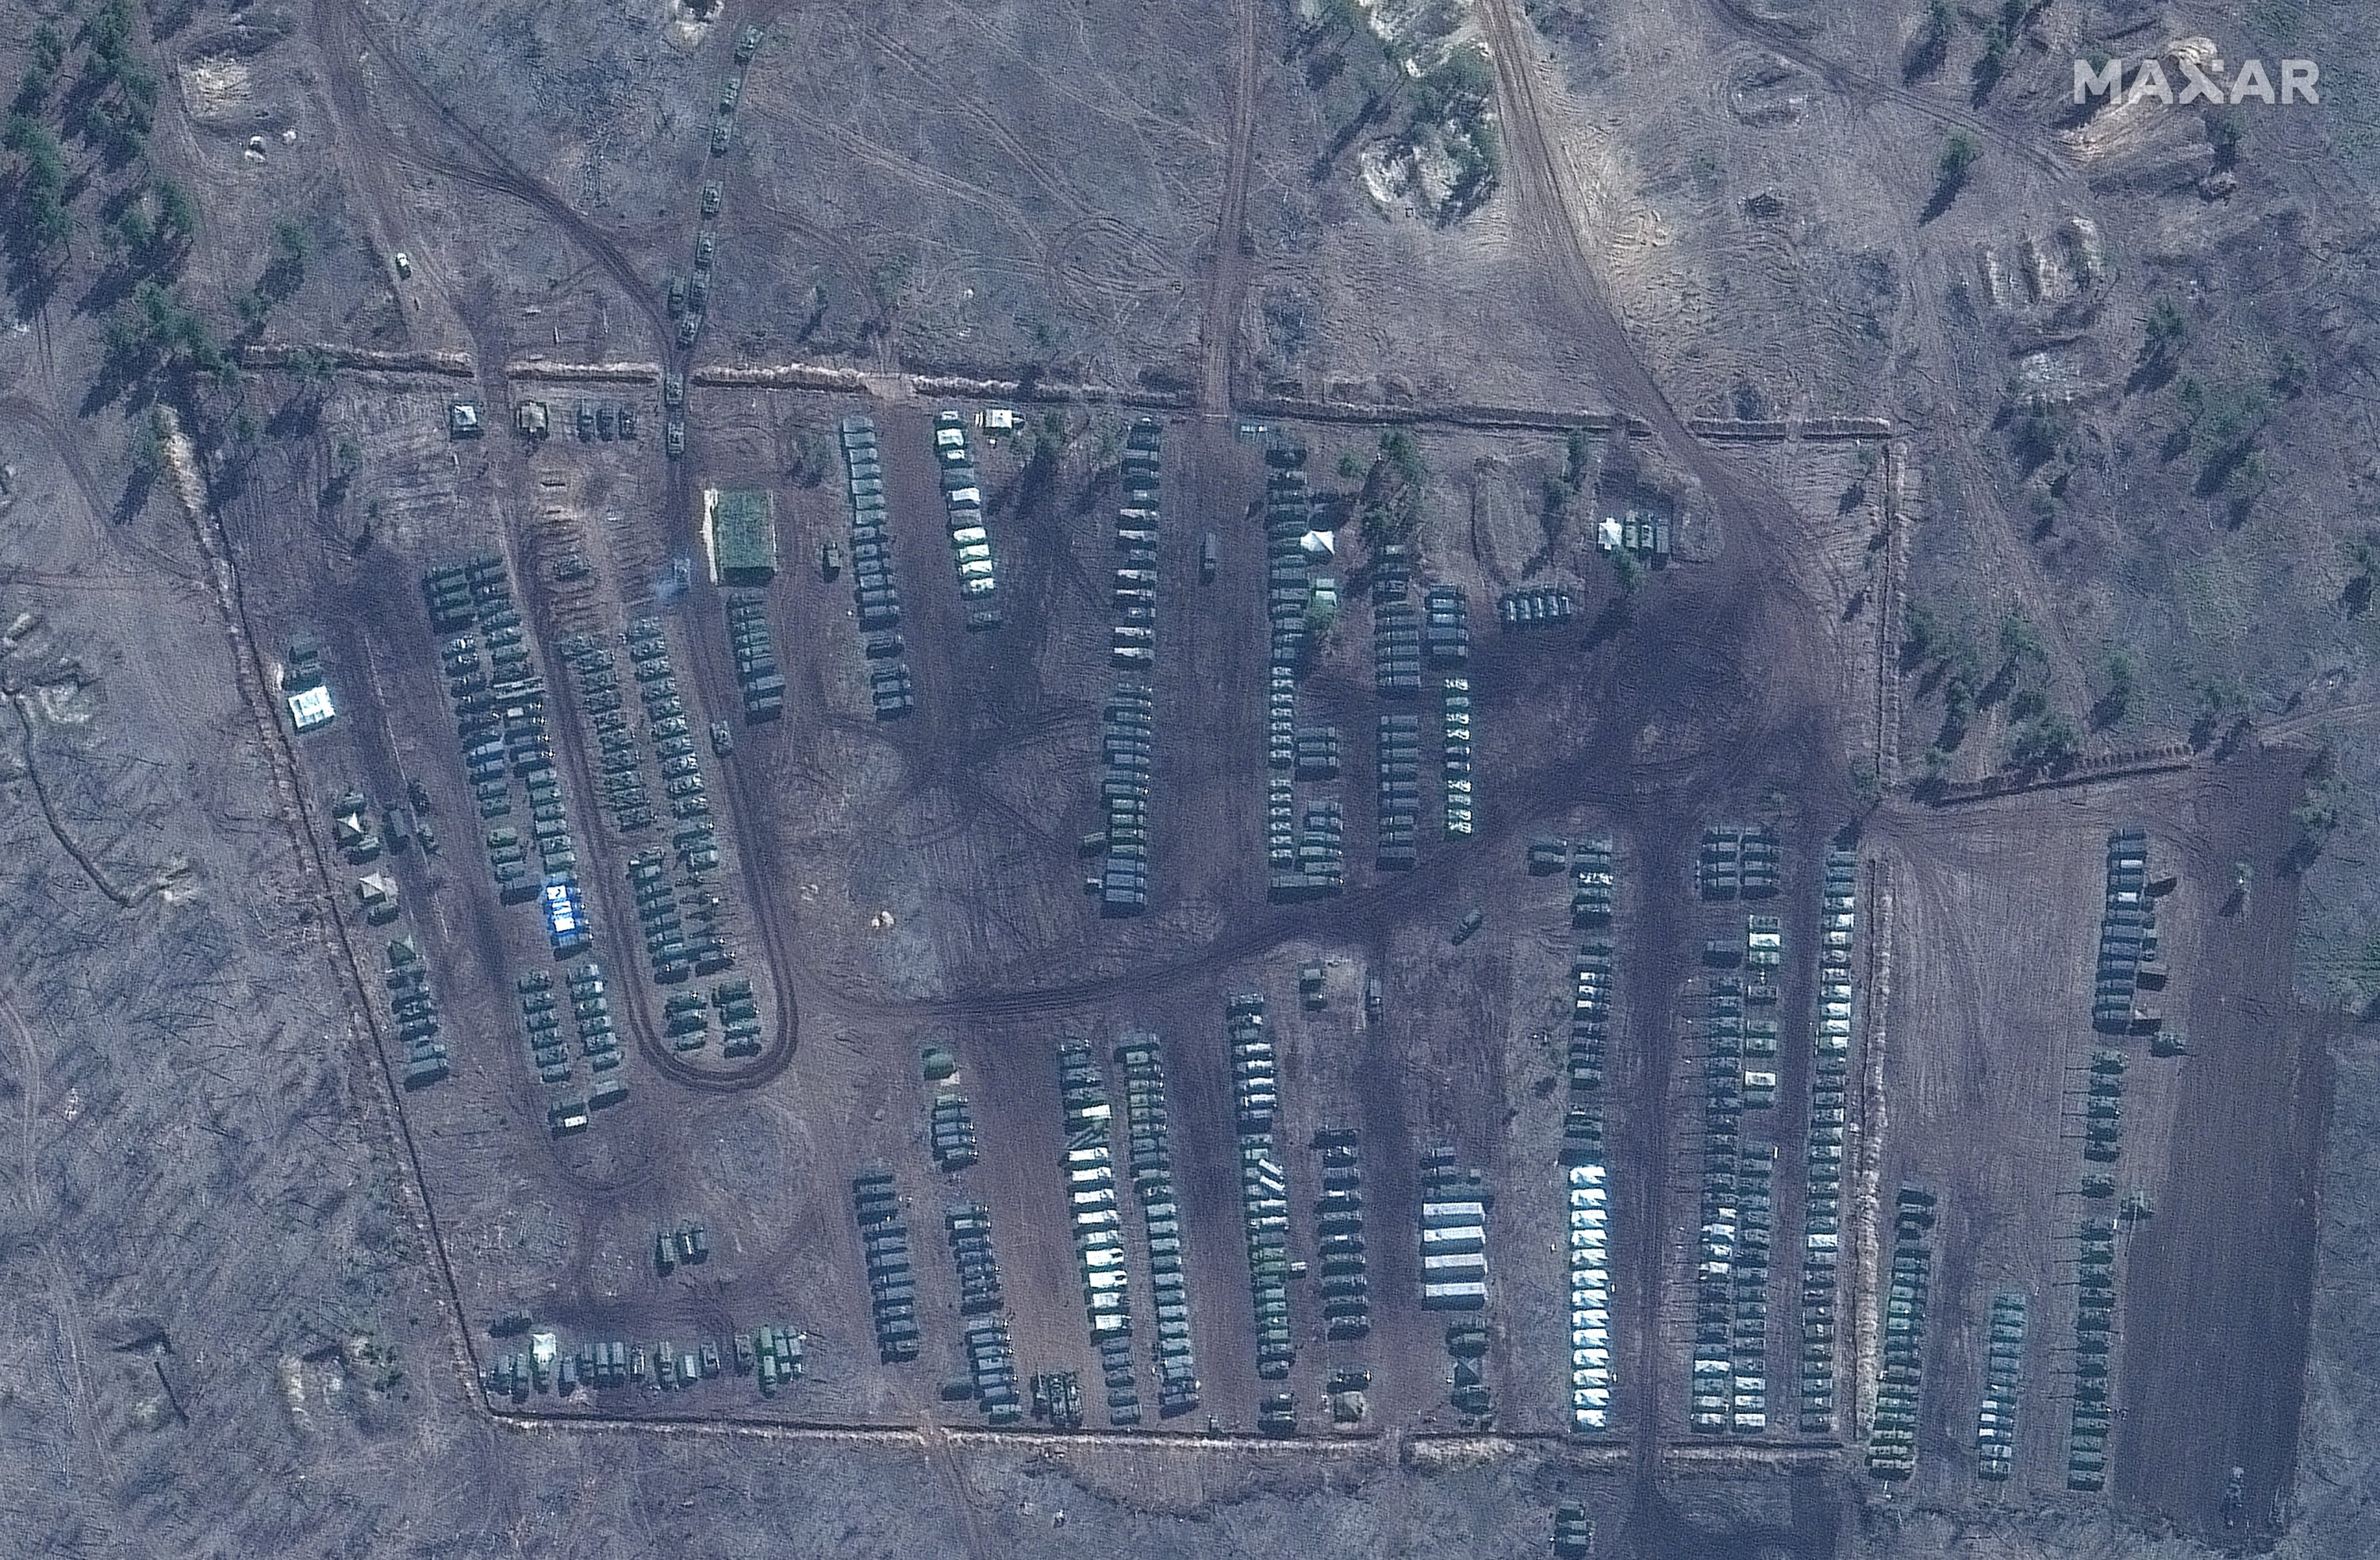 A satellite image of tanks and military equipment at the Pogorovo training area near Voronezh, Russia, Saturday, April 10, 2021. (Maxar Technologies via AP)